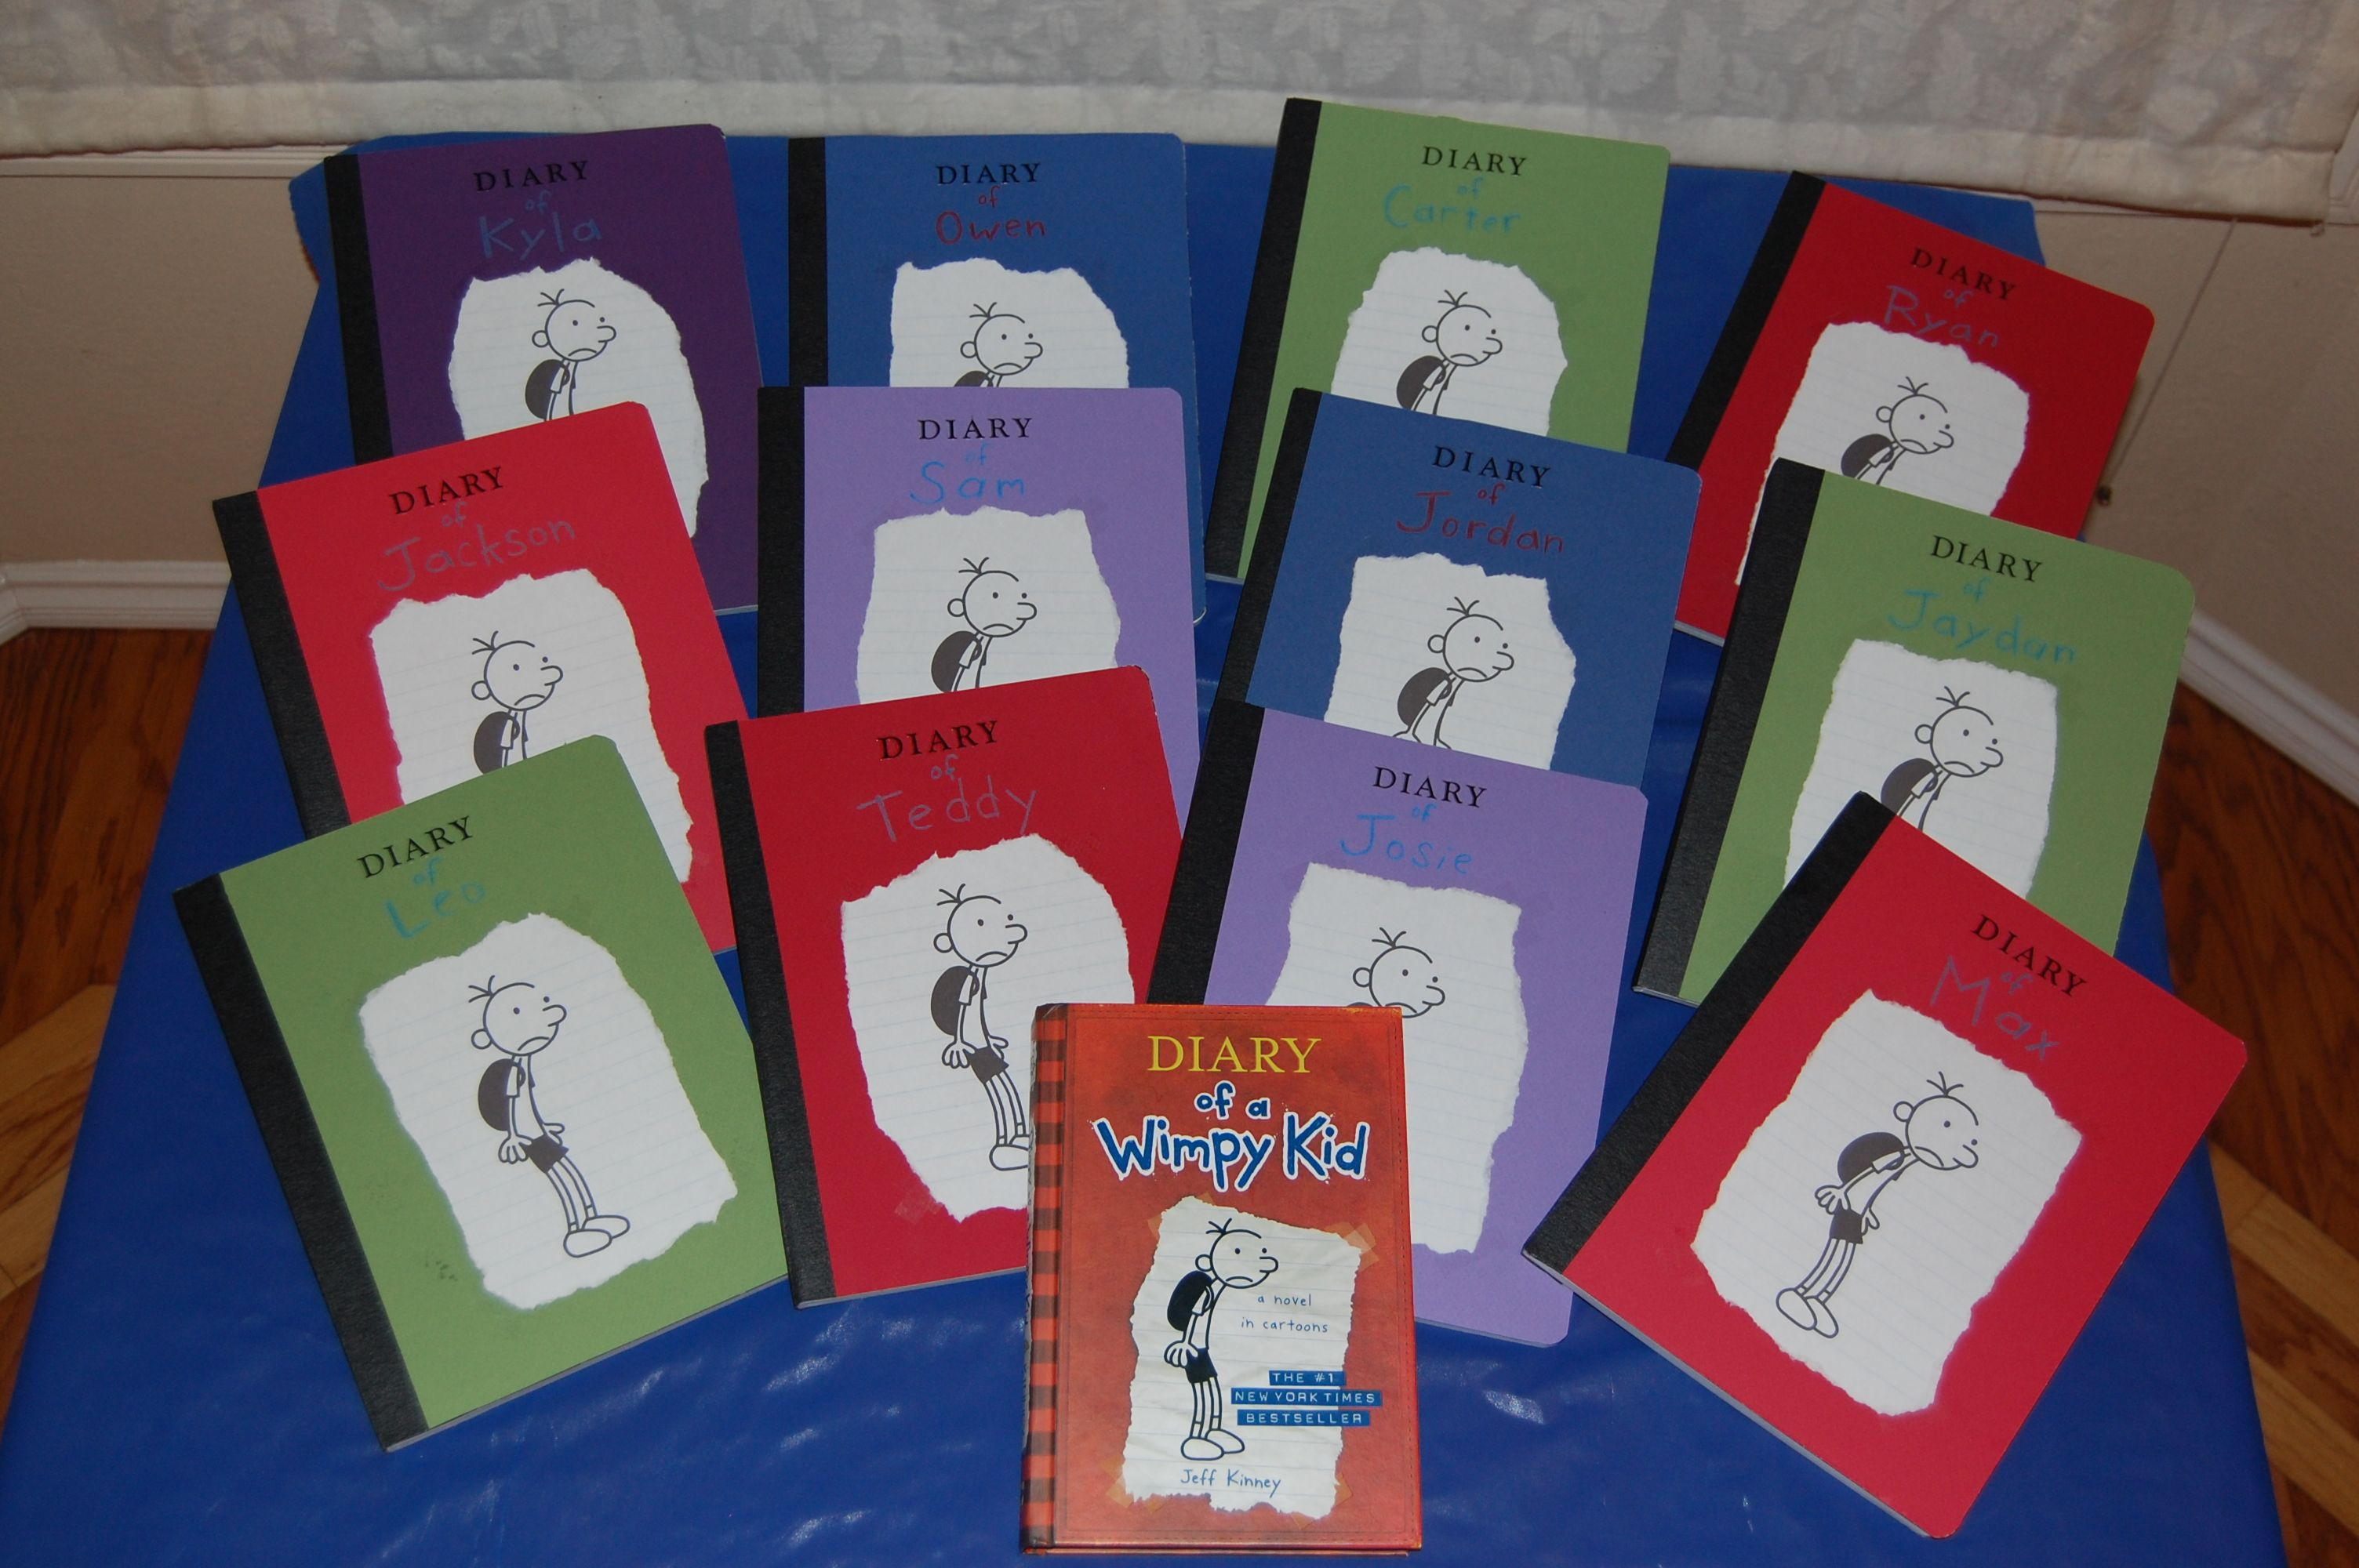 Wimpy kid party favors | Diary of a wimpy kid party ideas | Pinterest